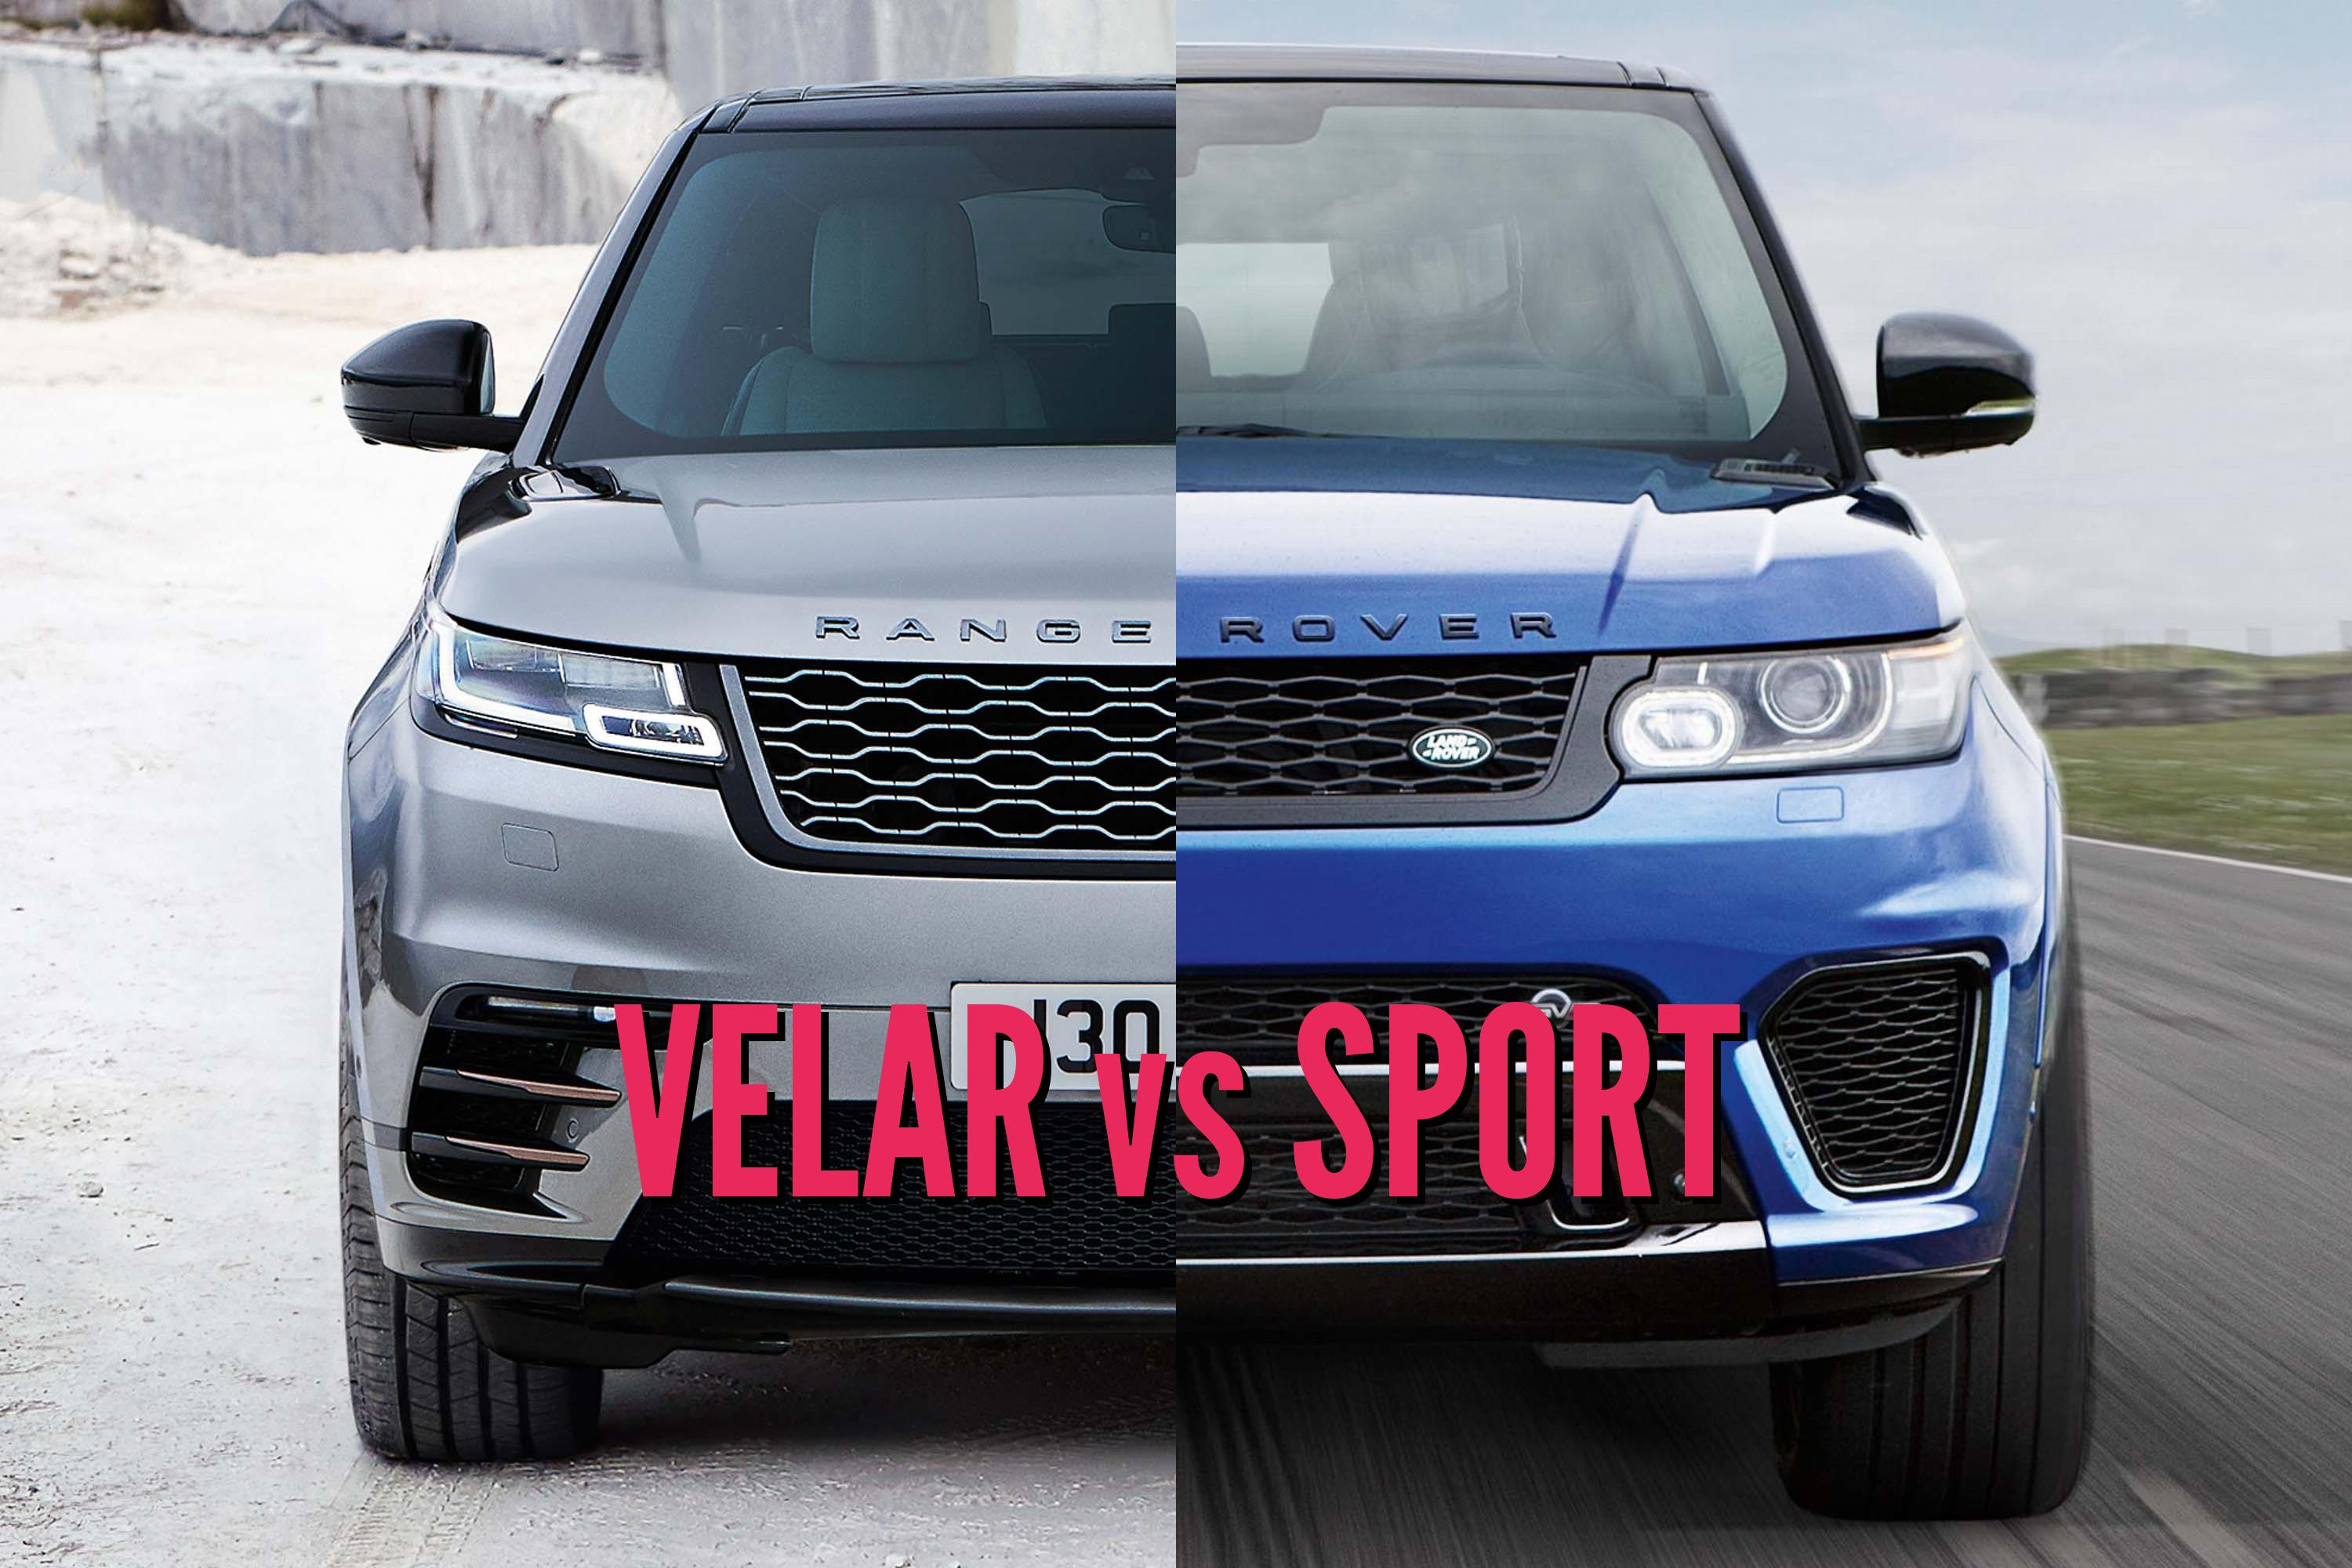 2018 range rover velar vs range rover sport picture comparison between the axles. Black Bedroom Furniture Sets. Home Design Ideas